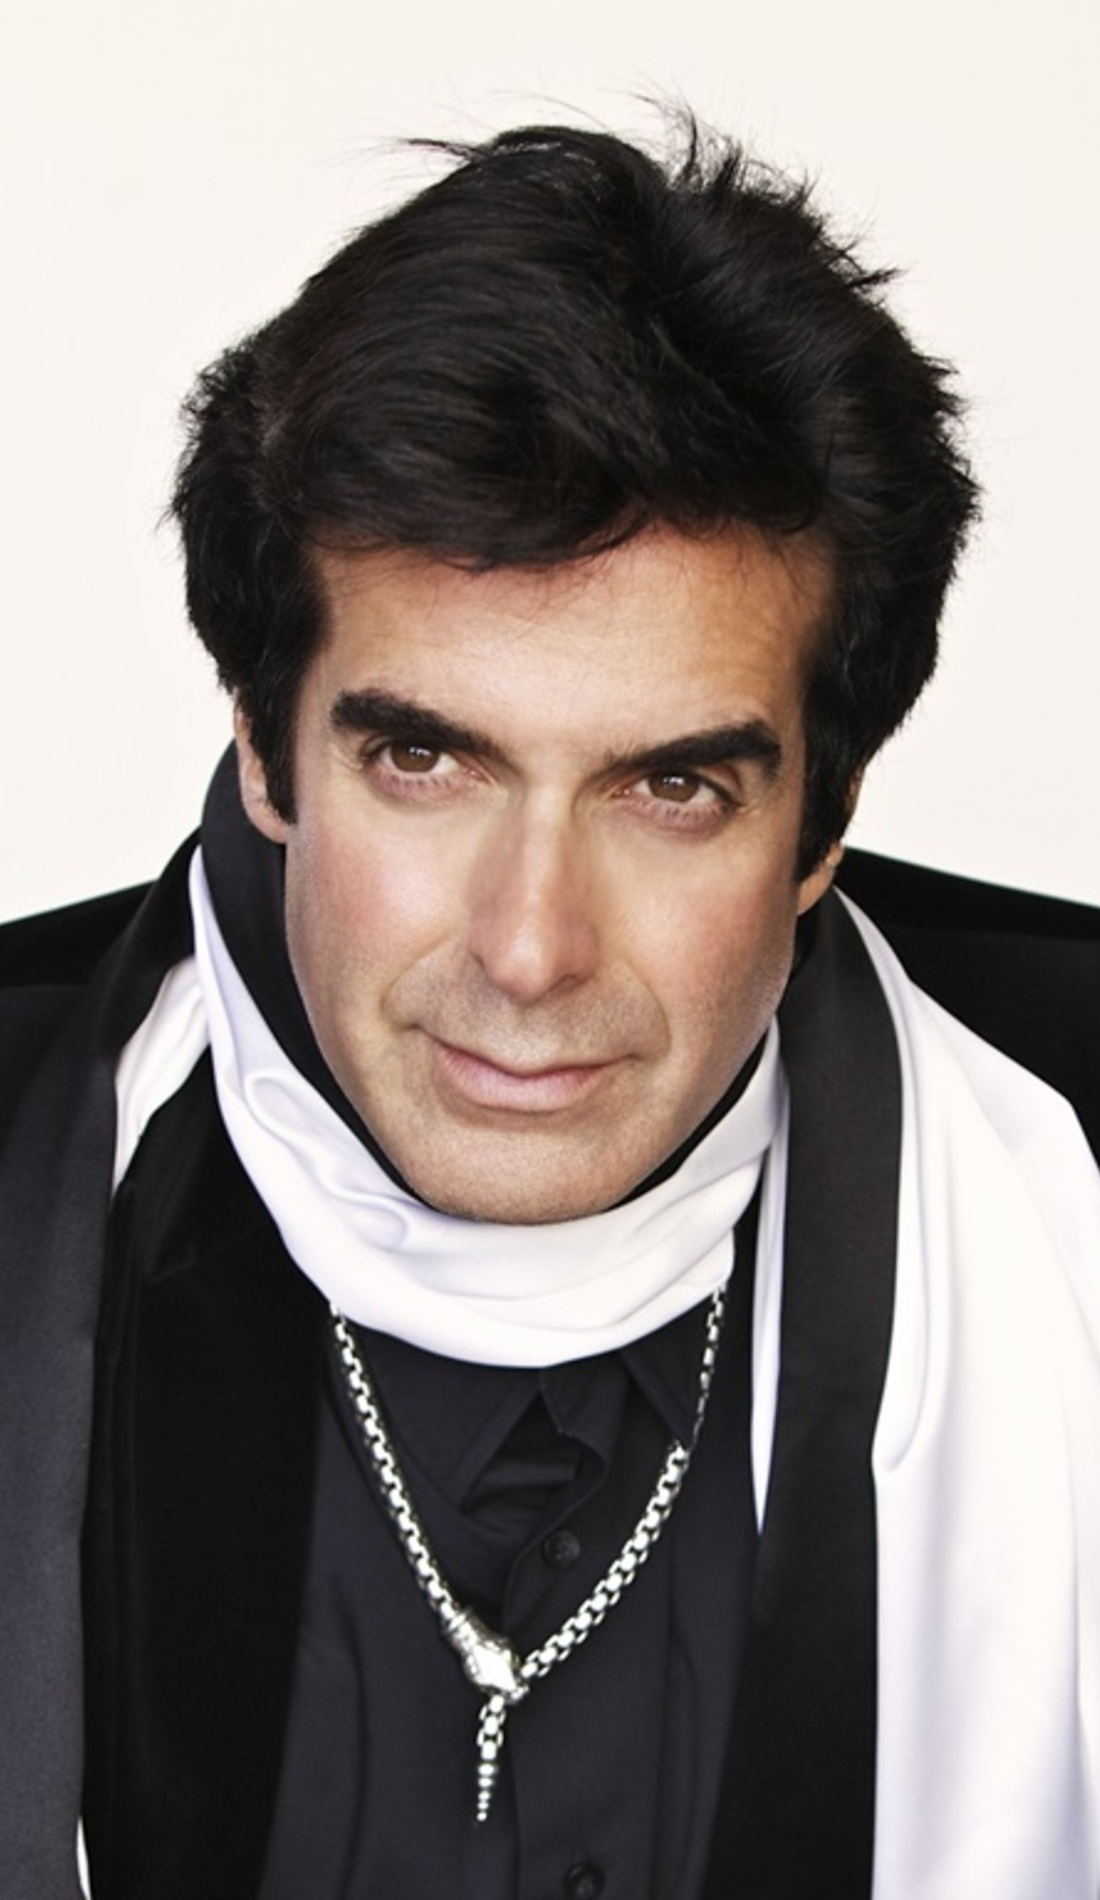 A David Copperfield live event